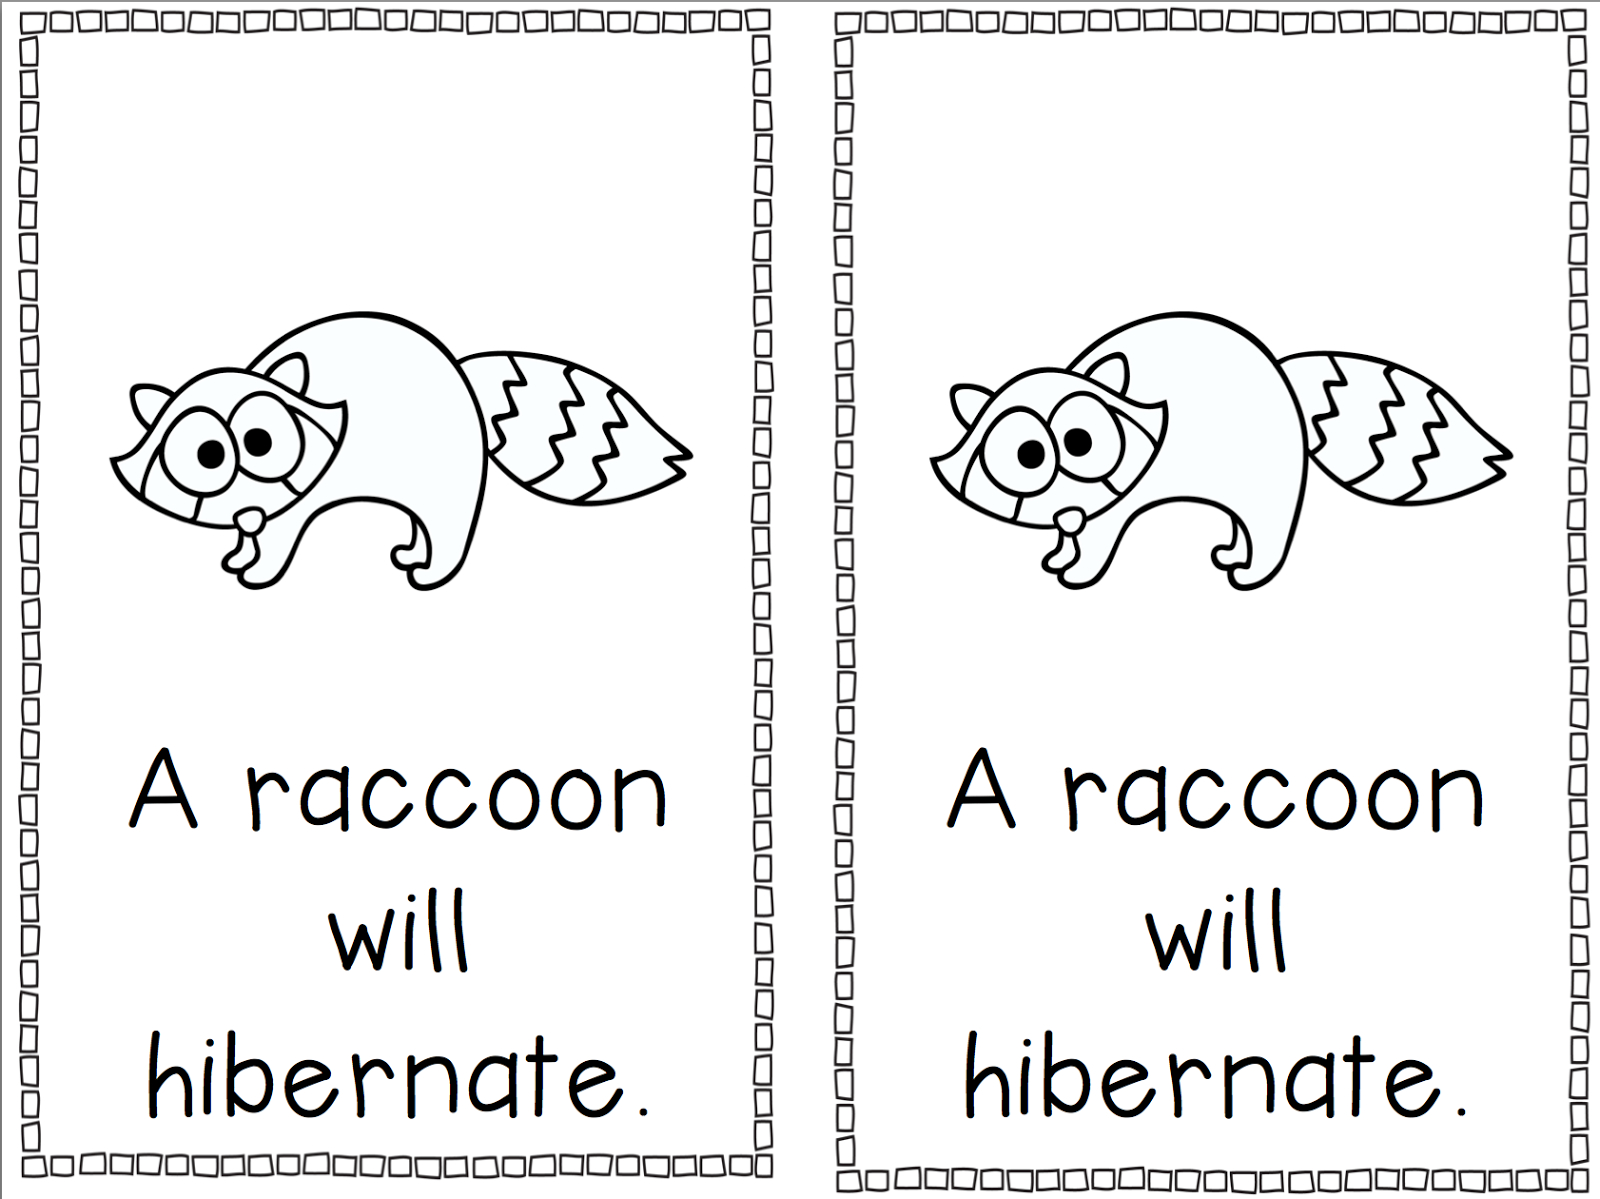 Free Hibernation Cliparts, Download Free Clip Art, Free Clip Art On - Free Printable Hibernation Worksheets